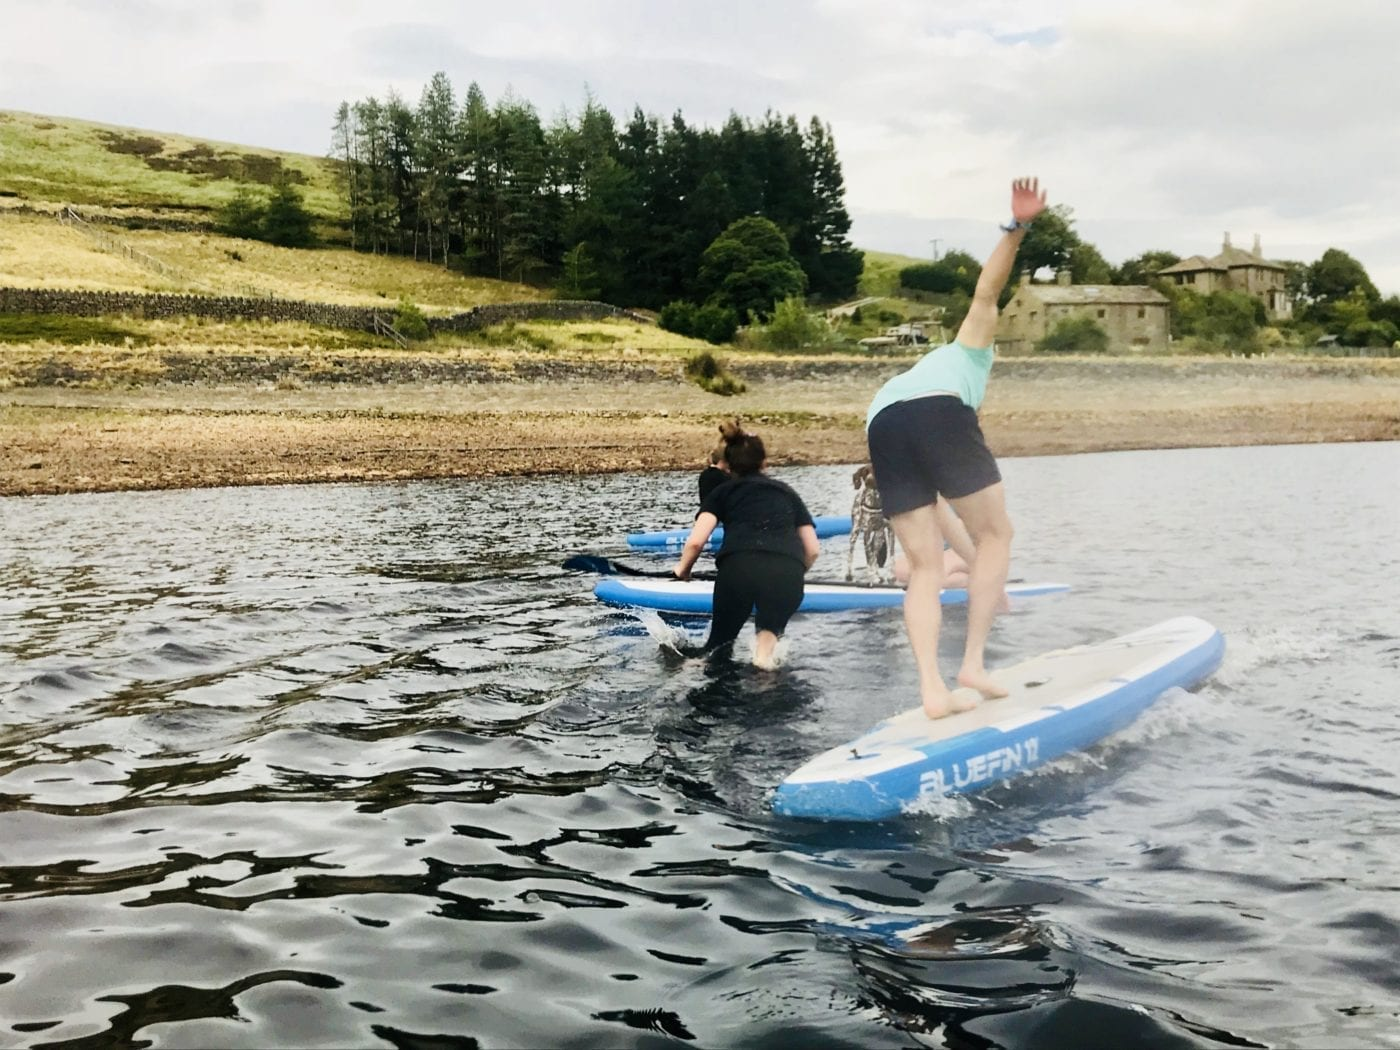 Bluefin SUP's lizzie has a walk on water moment